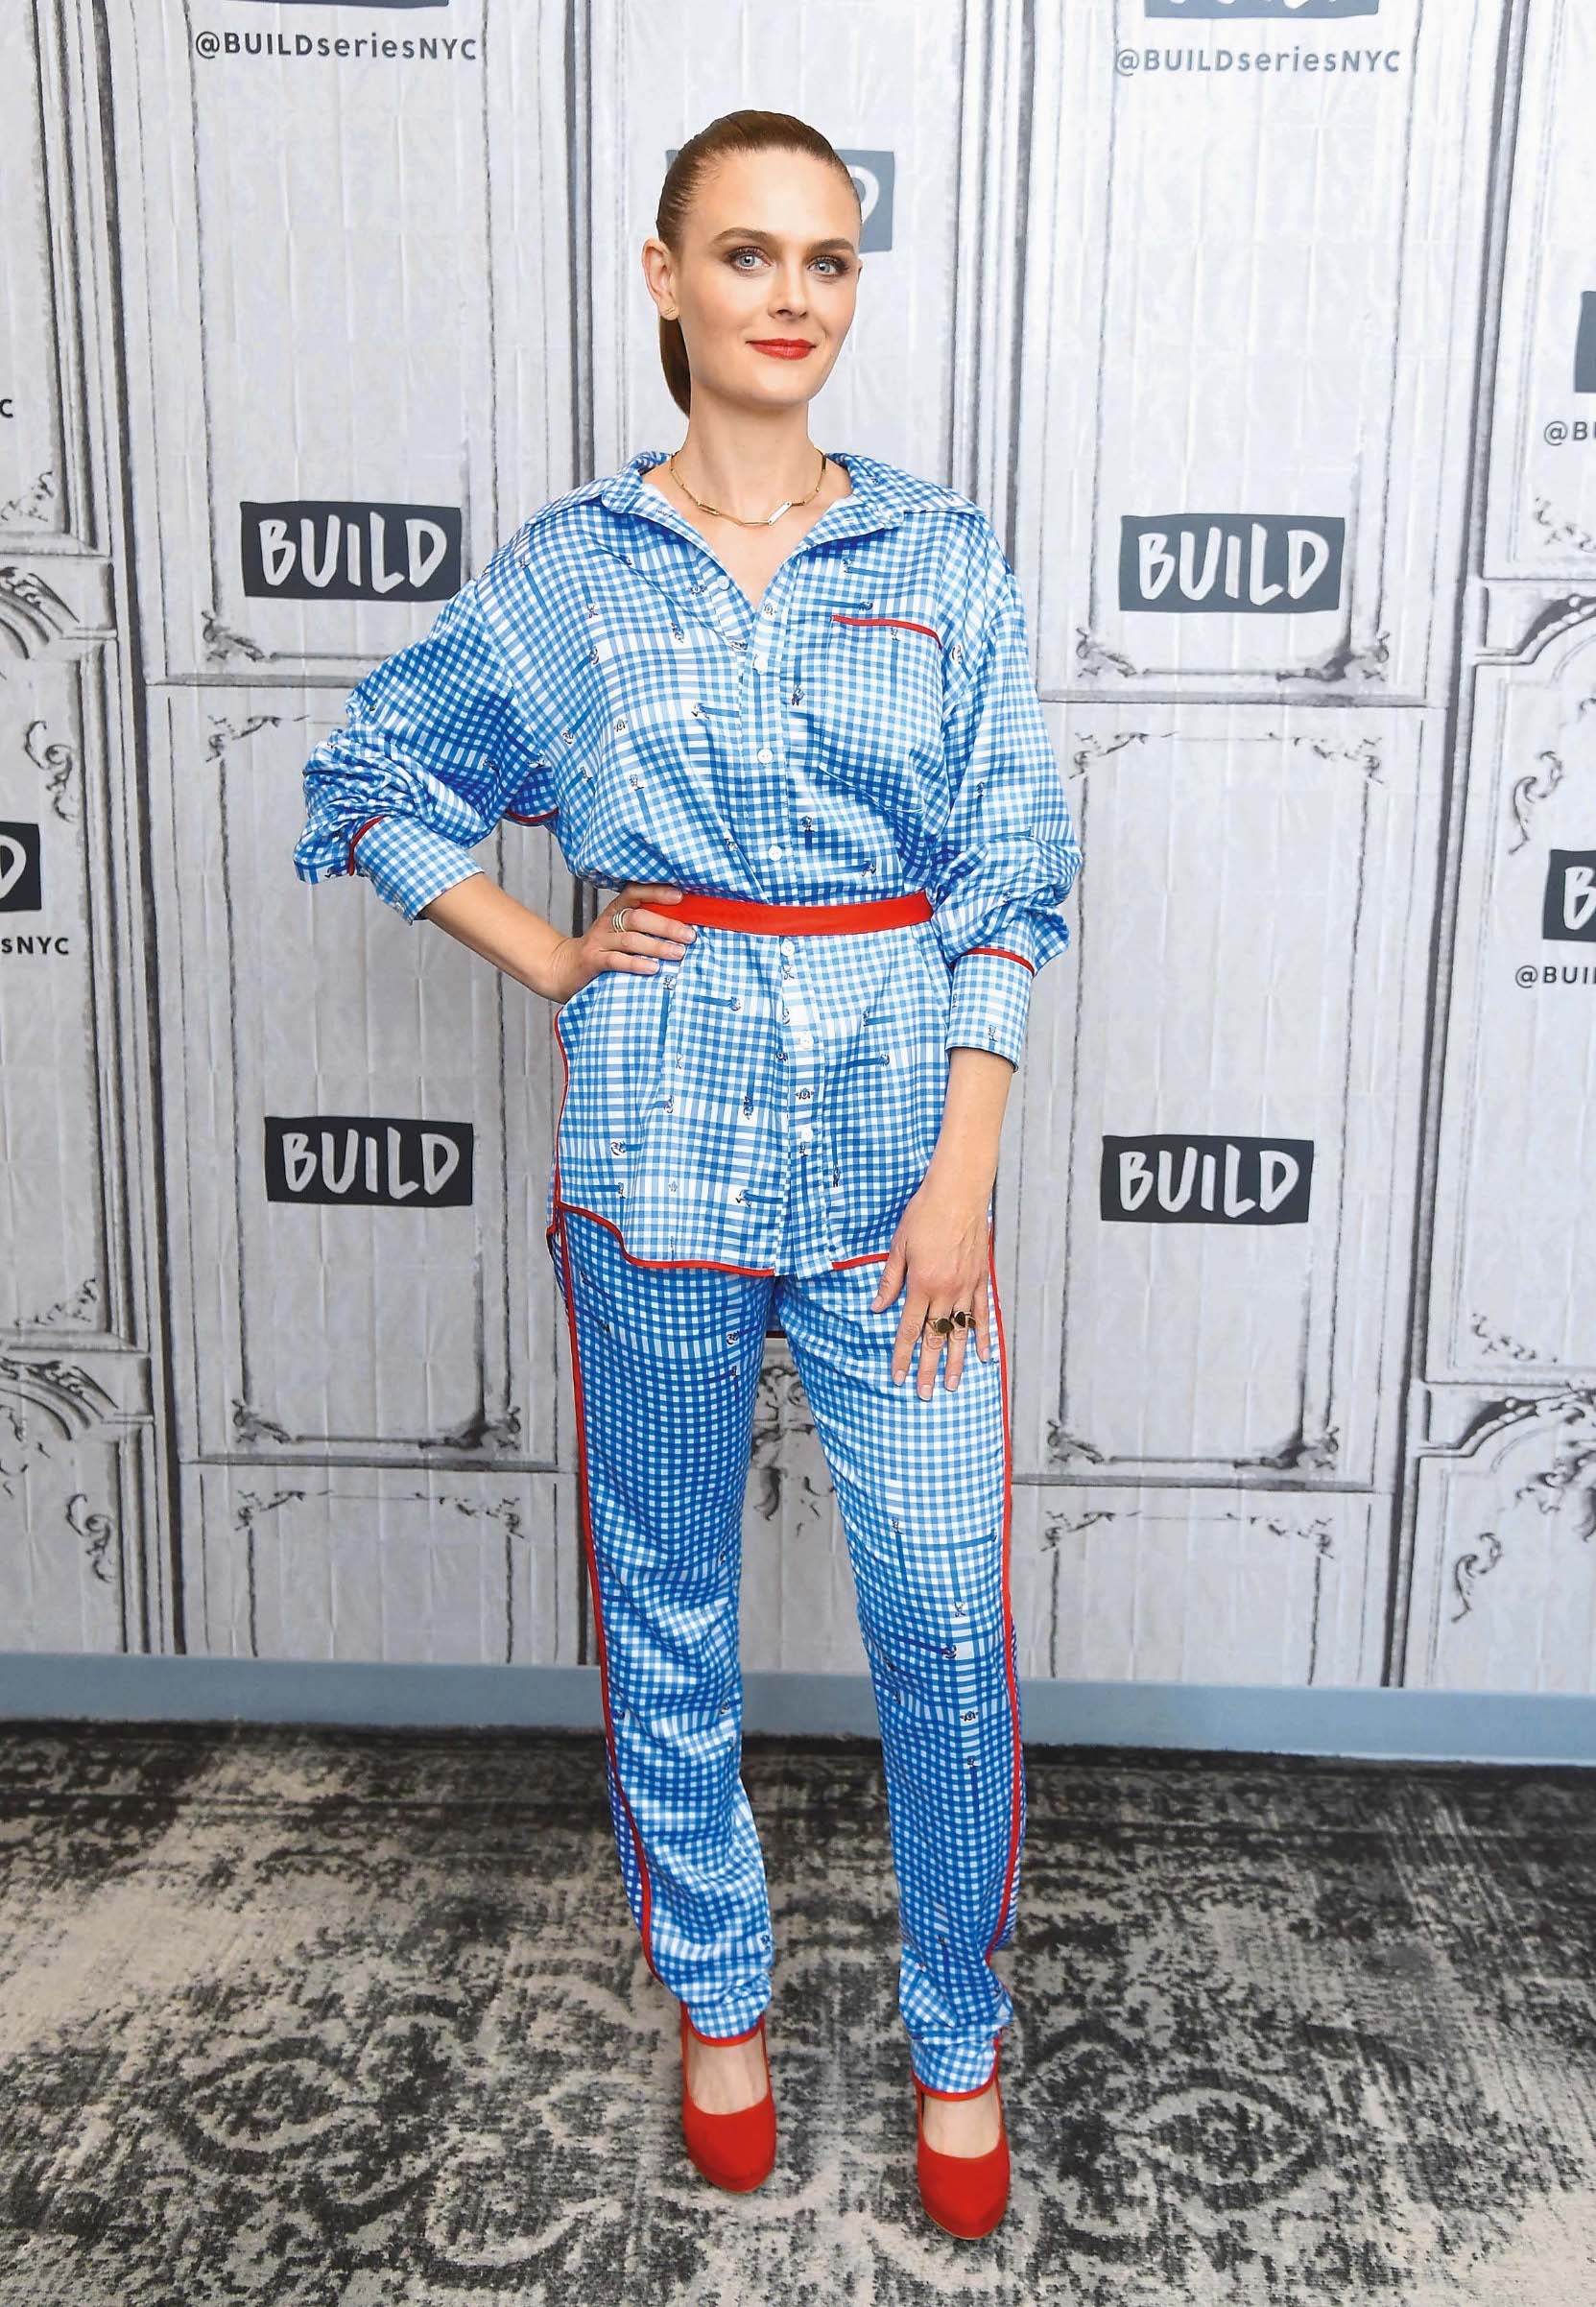 NEW YORK, NEW YORK - JULY 16:  Actress Emily Deschanel visits the Build Series to discuss season 4 of the TNT series 'Animal Kingdom' at Build Studio on July 16, 2019 in New York City. (Photo by Gary Gershoff/Getty Images)